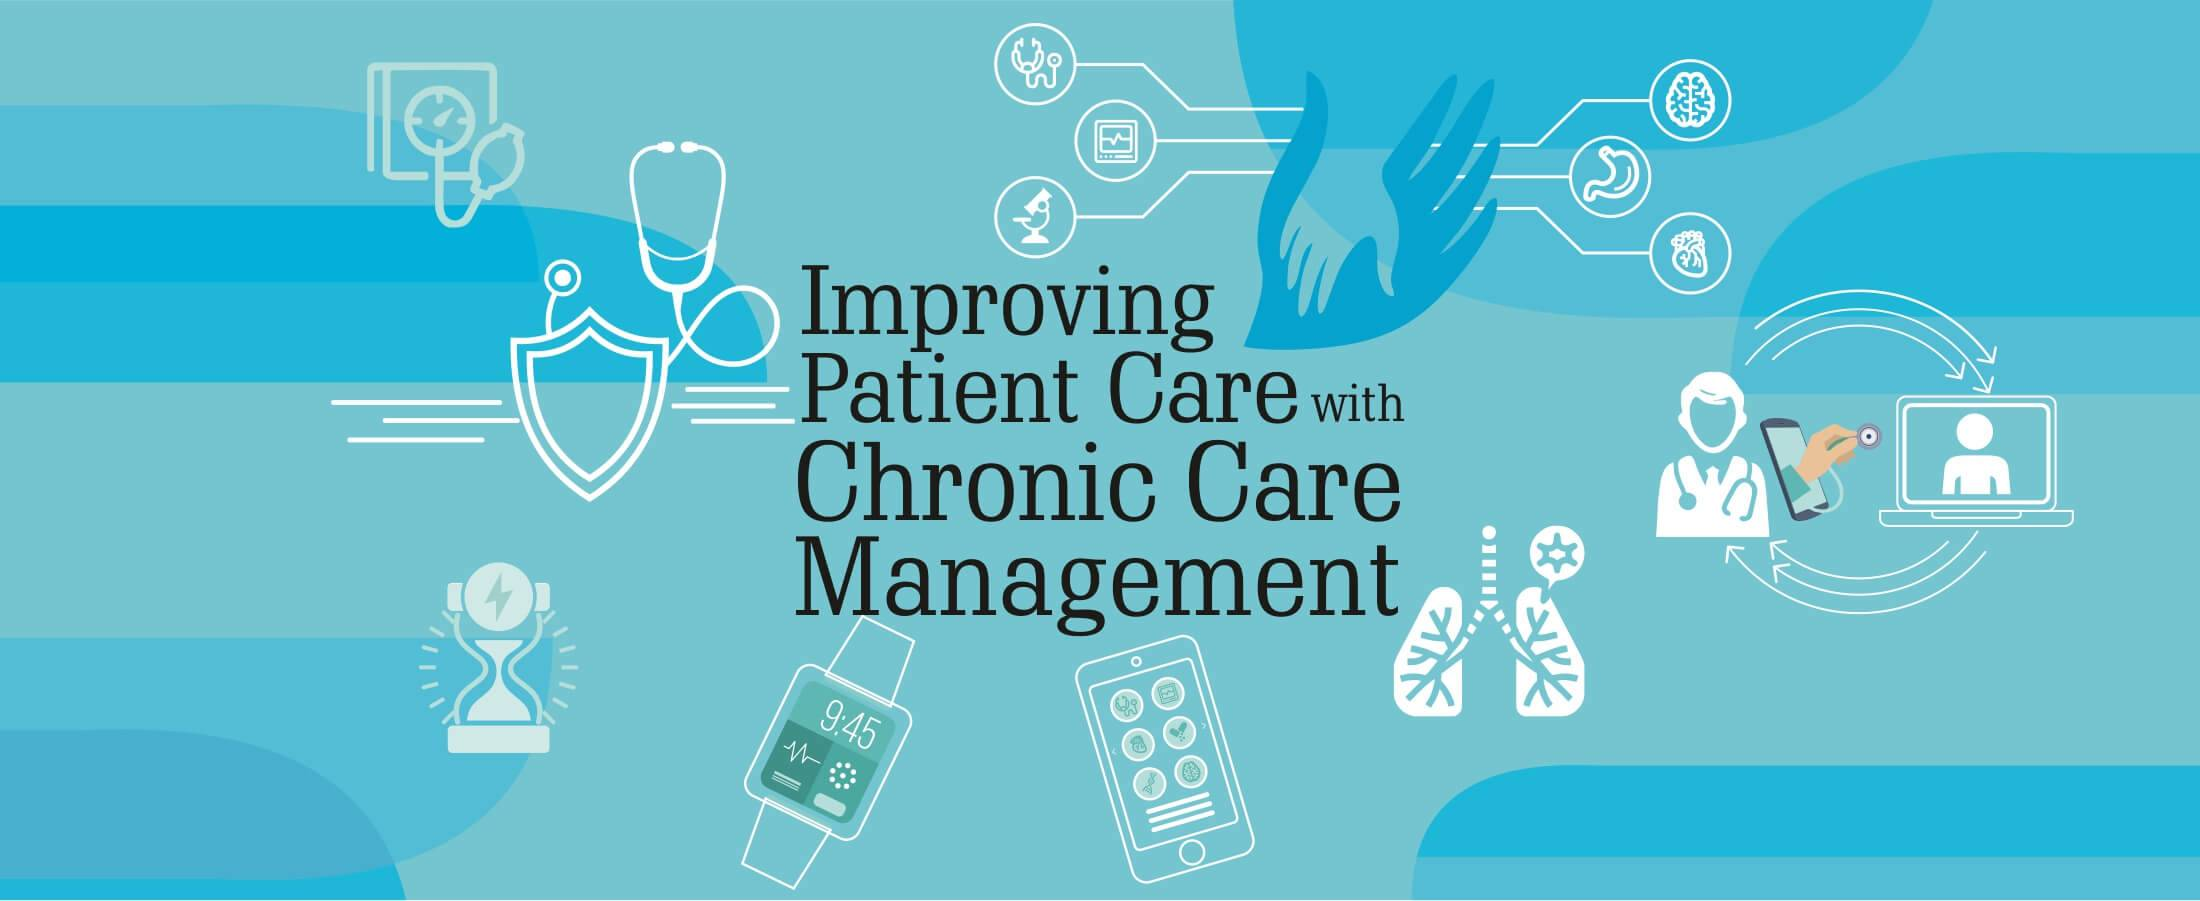 Mobifilia - Improving Patient Care with Chronic Care Management